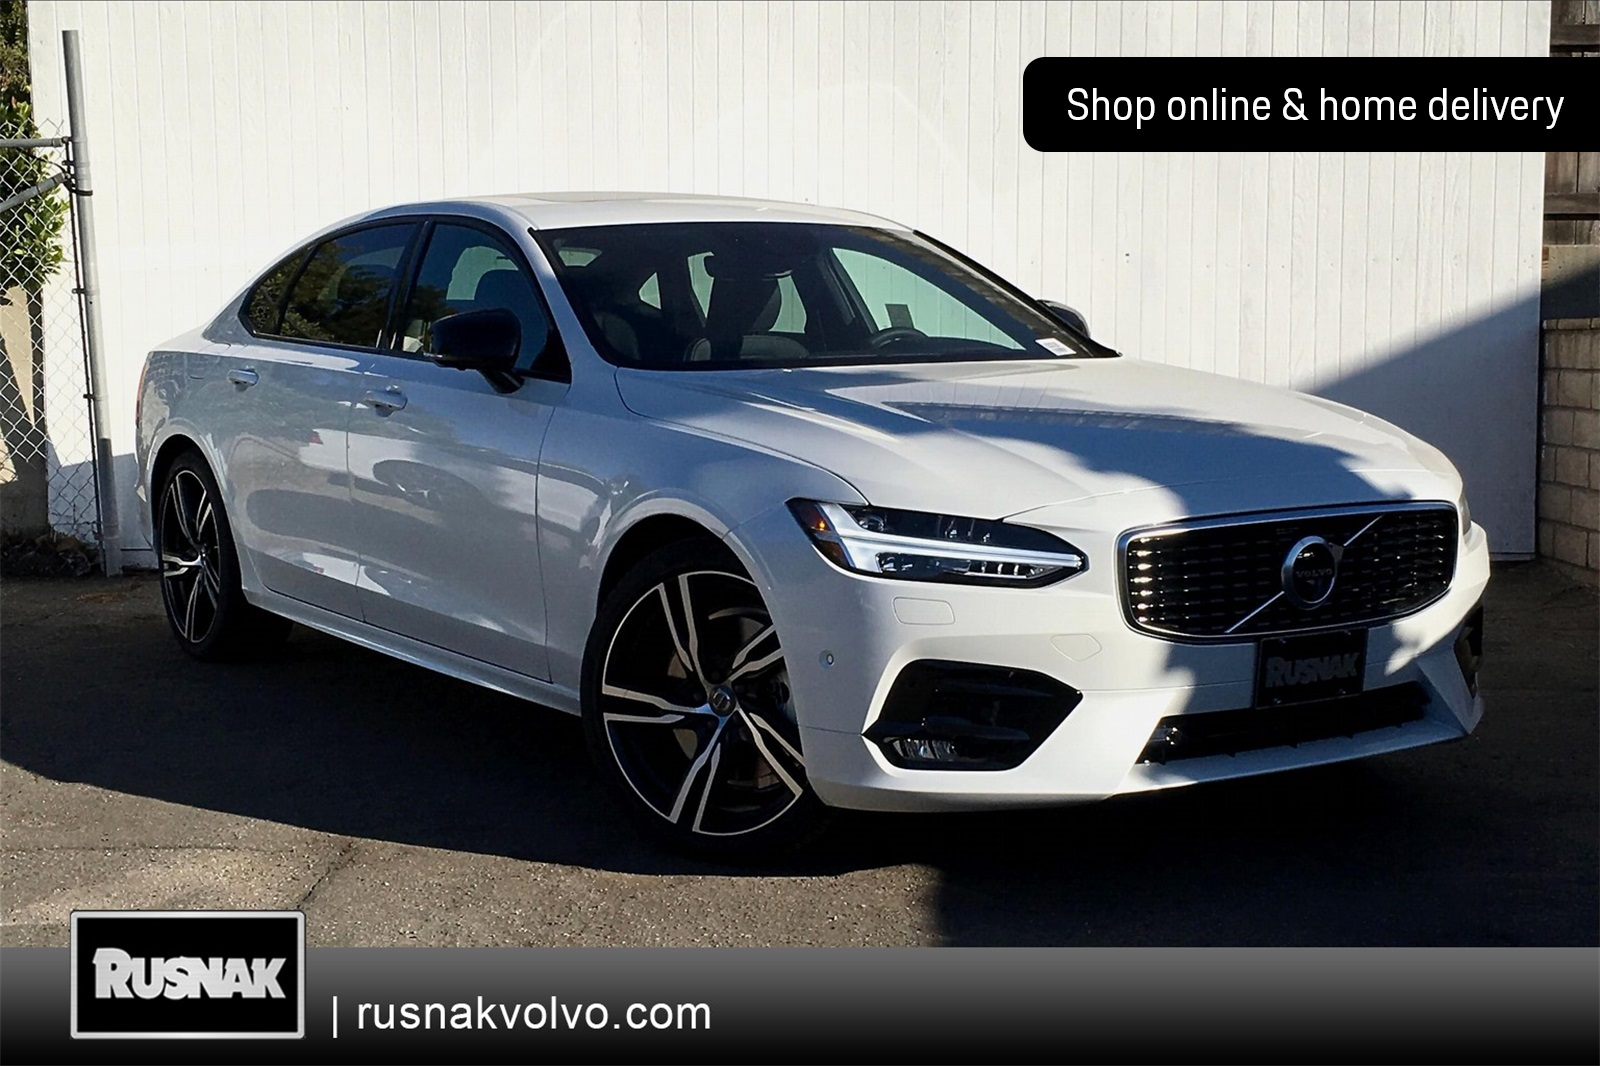 Volvo S90 Lease >> New 2020 Volvo S90 T6 R-Design 4D Sedan in Pasadena #16200168 | Rusnak Auto Group